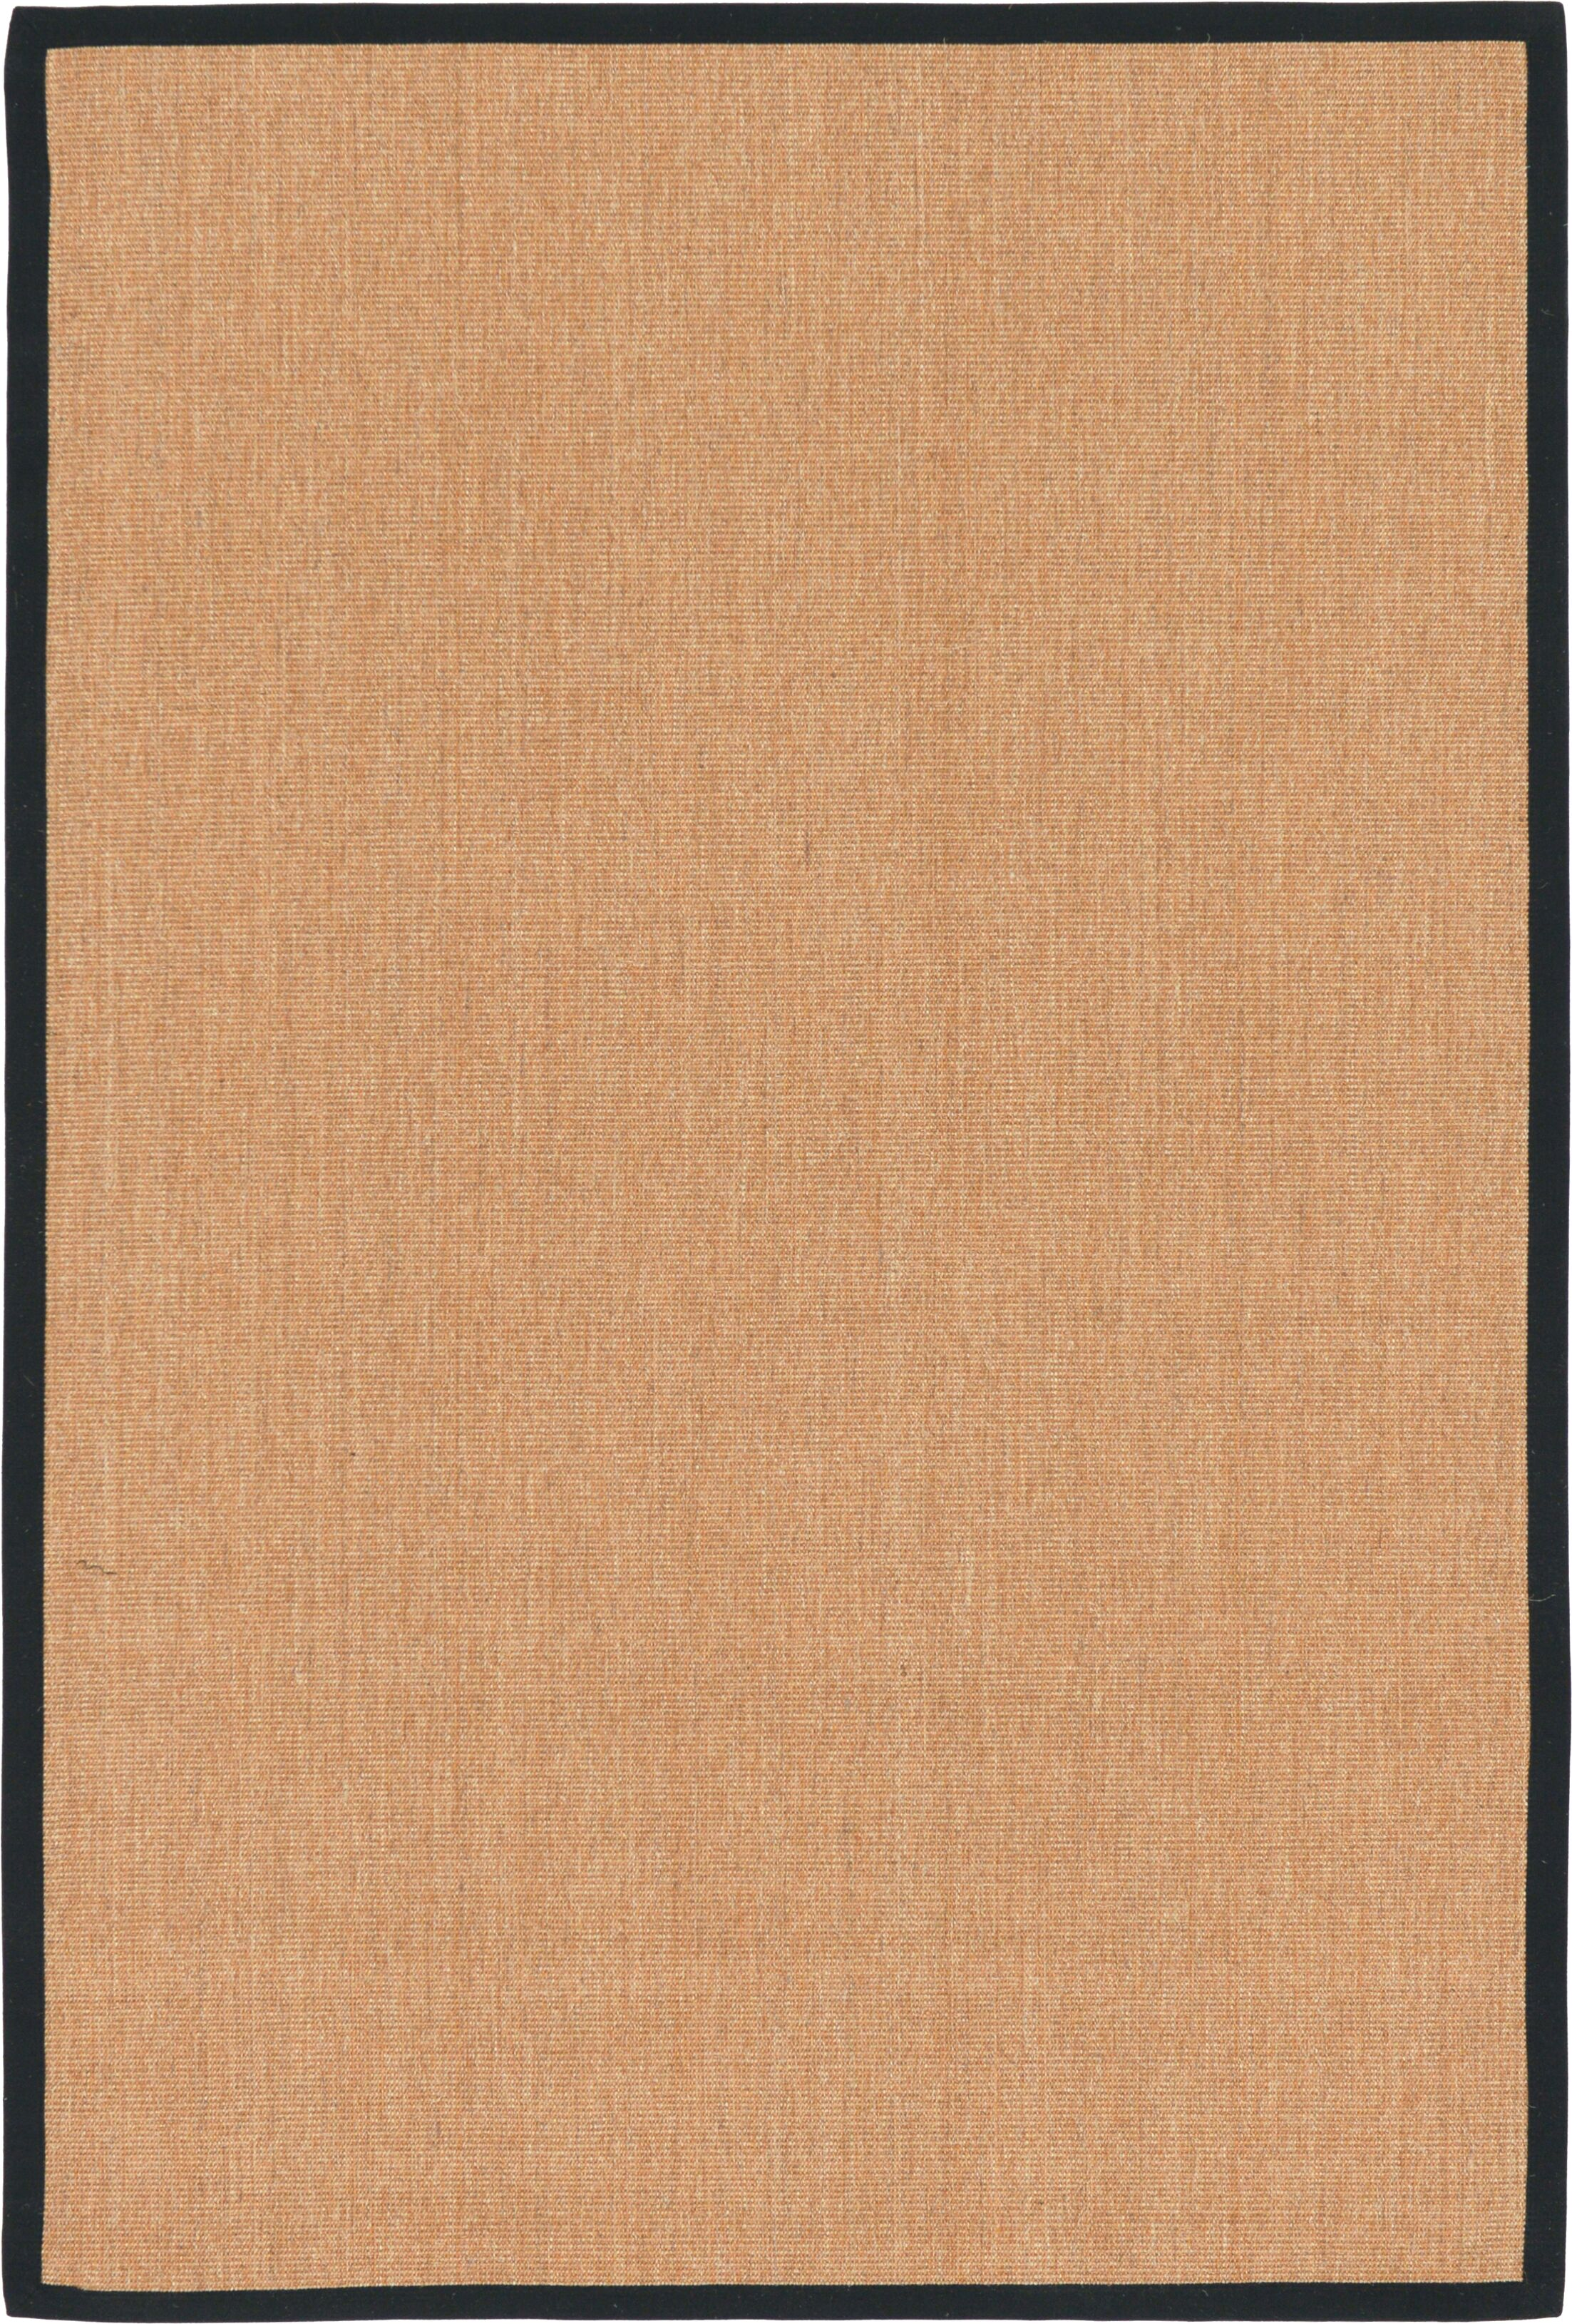 Grosvenor Light Brown Area Rug Rug Size: Rectangle 9' x 12'